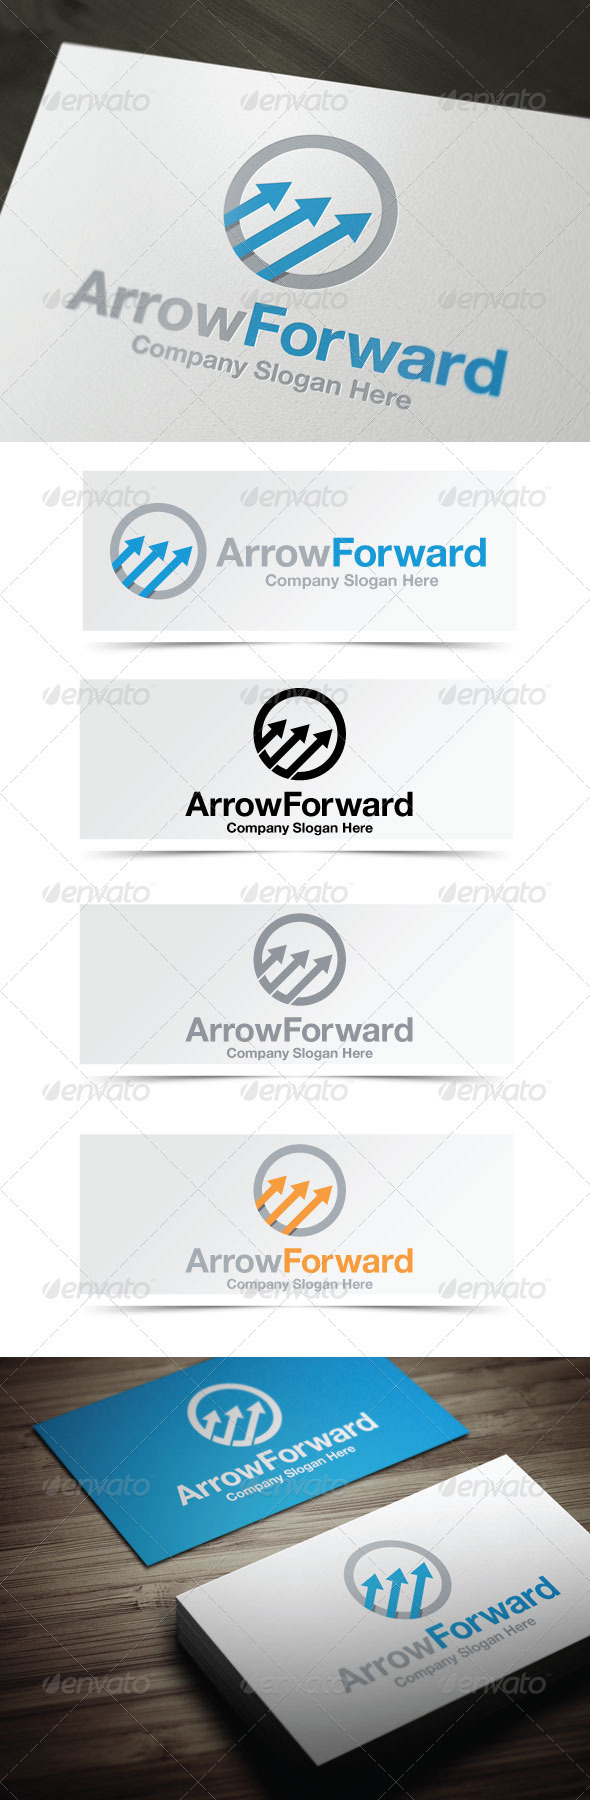 GraphicRiver Arrow Forward 3966275